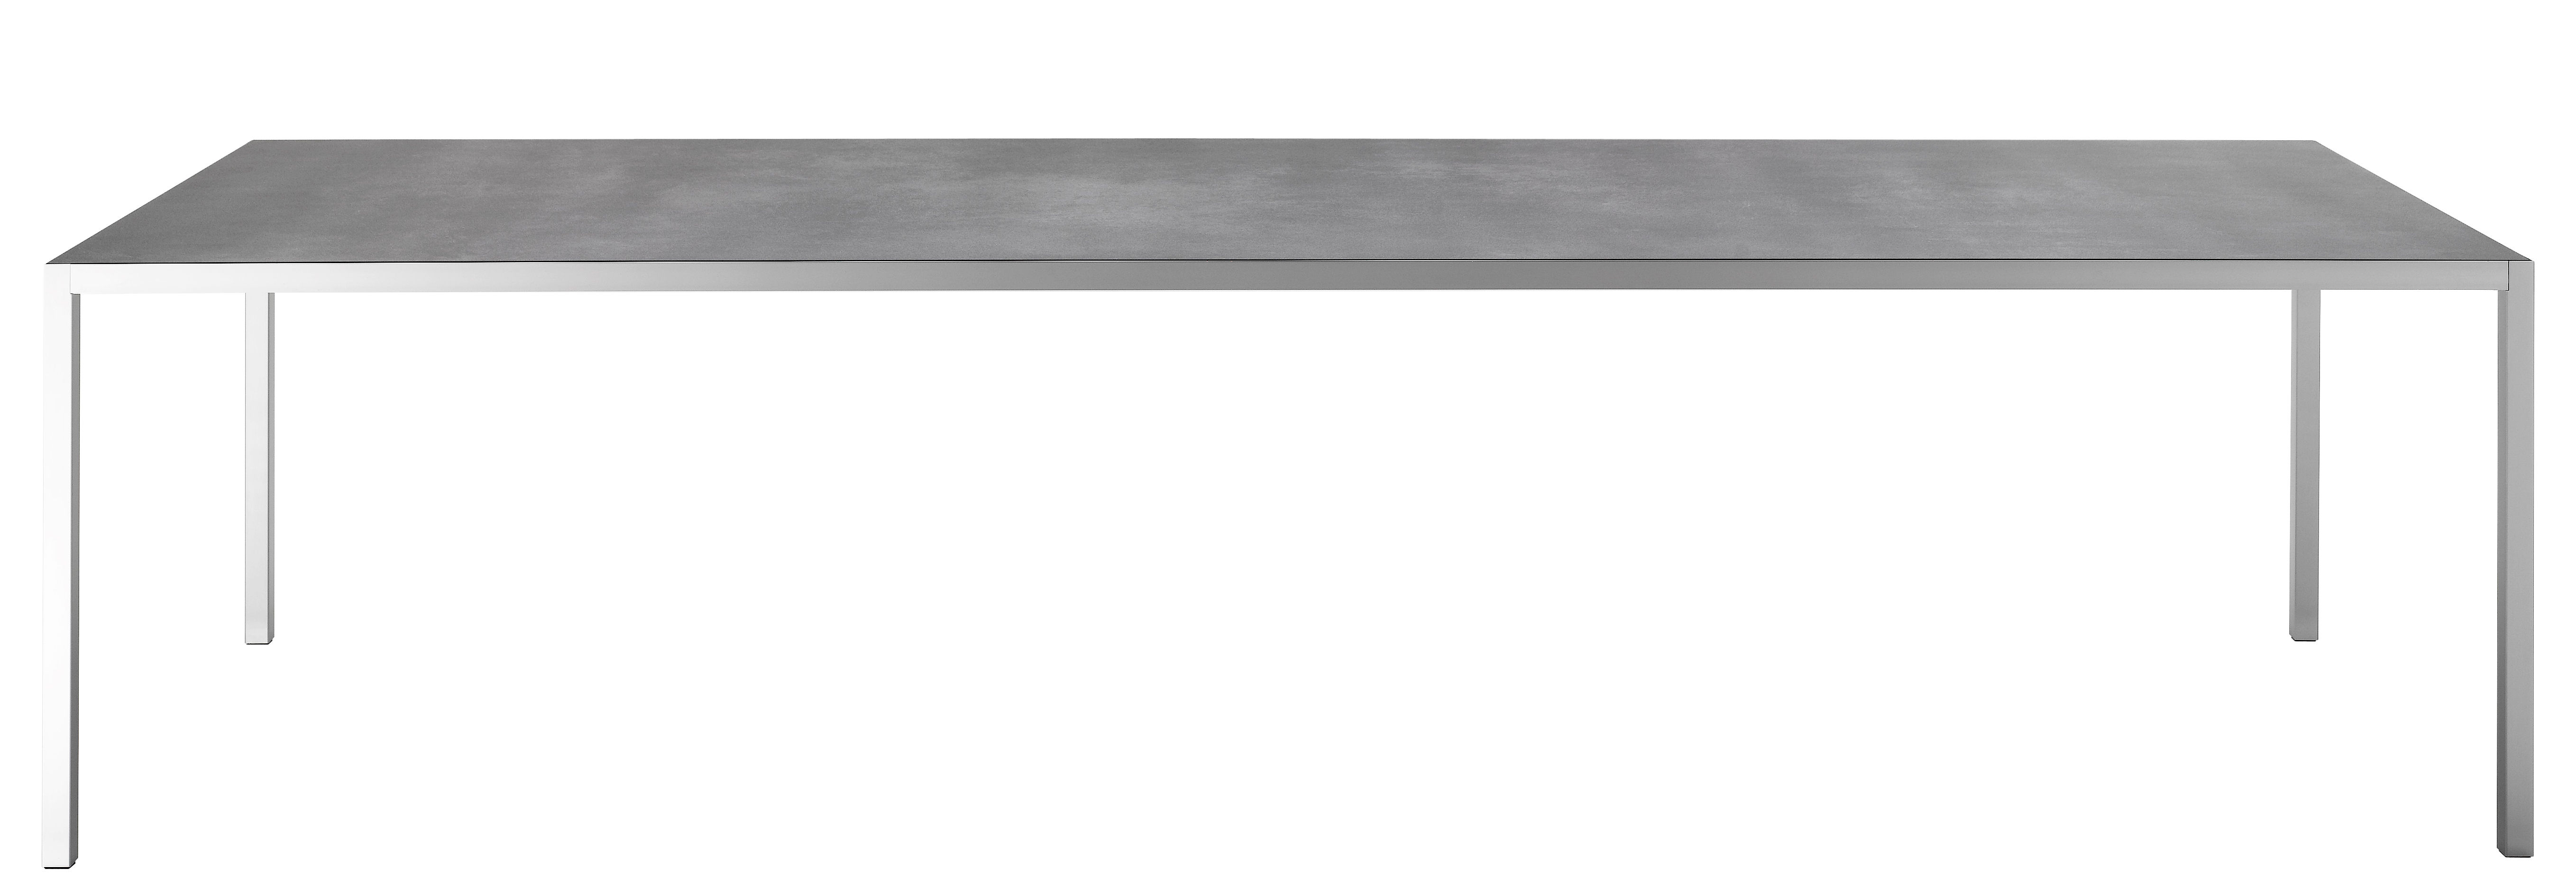 Lim 3 0 table grey ceramic anodized alu structure by mdf for Table html structure